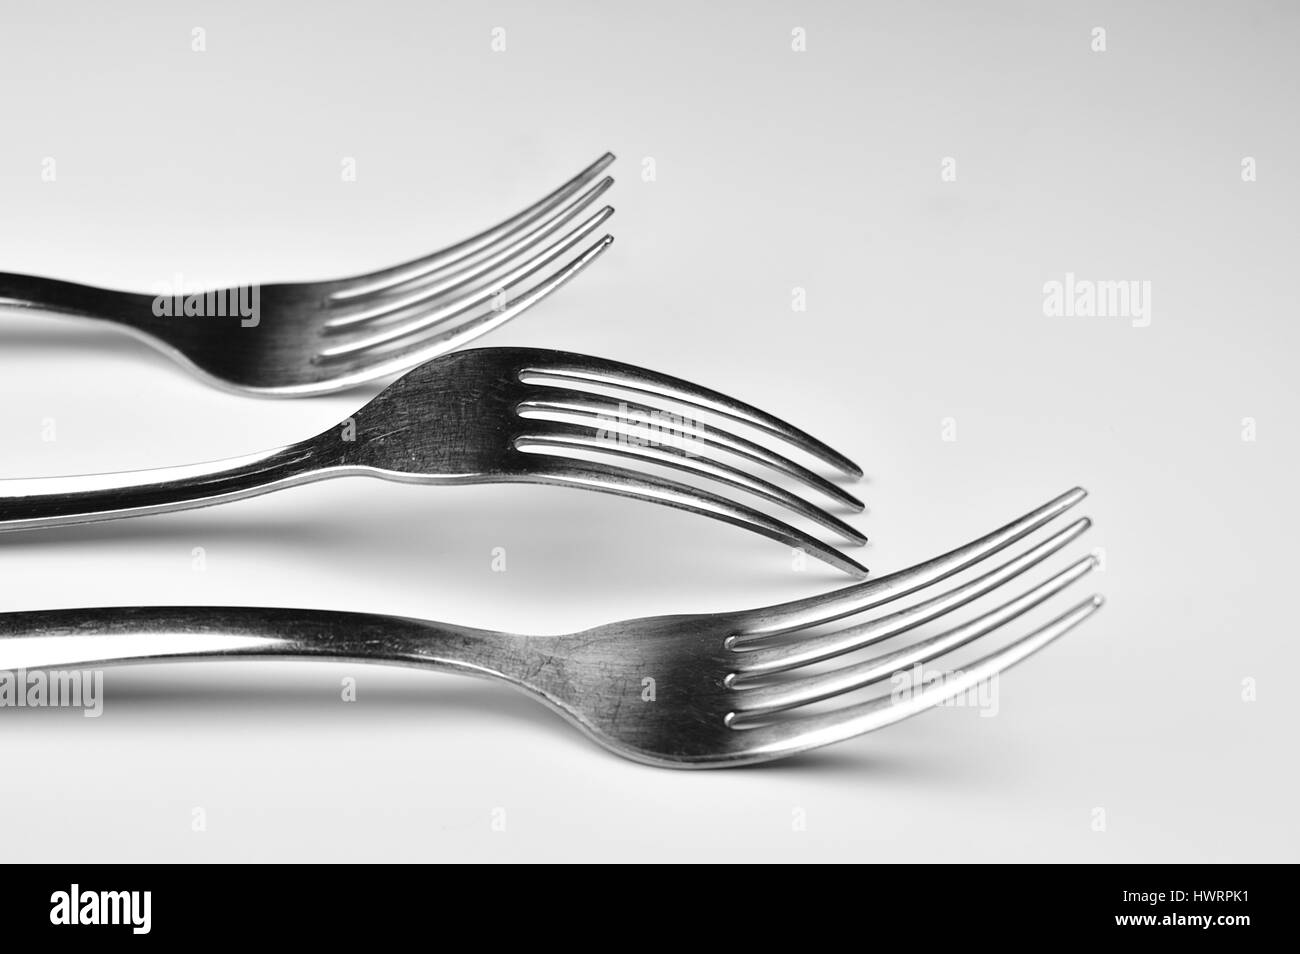 Forks isolated on white background - Stock Image